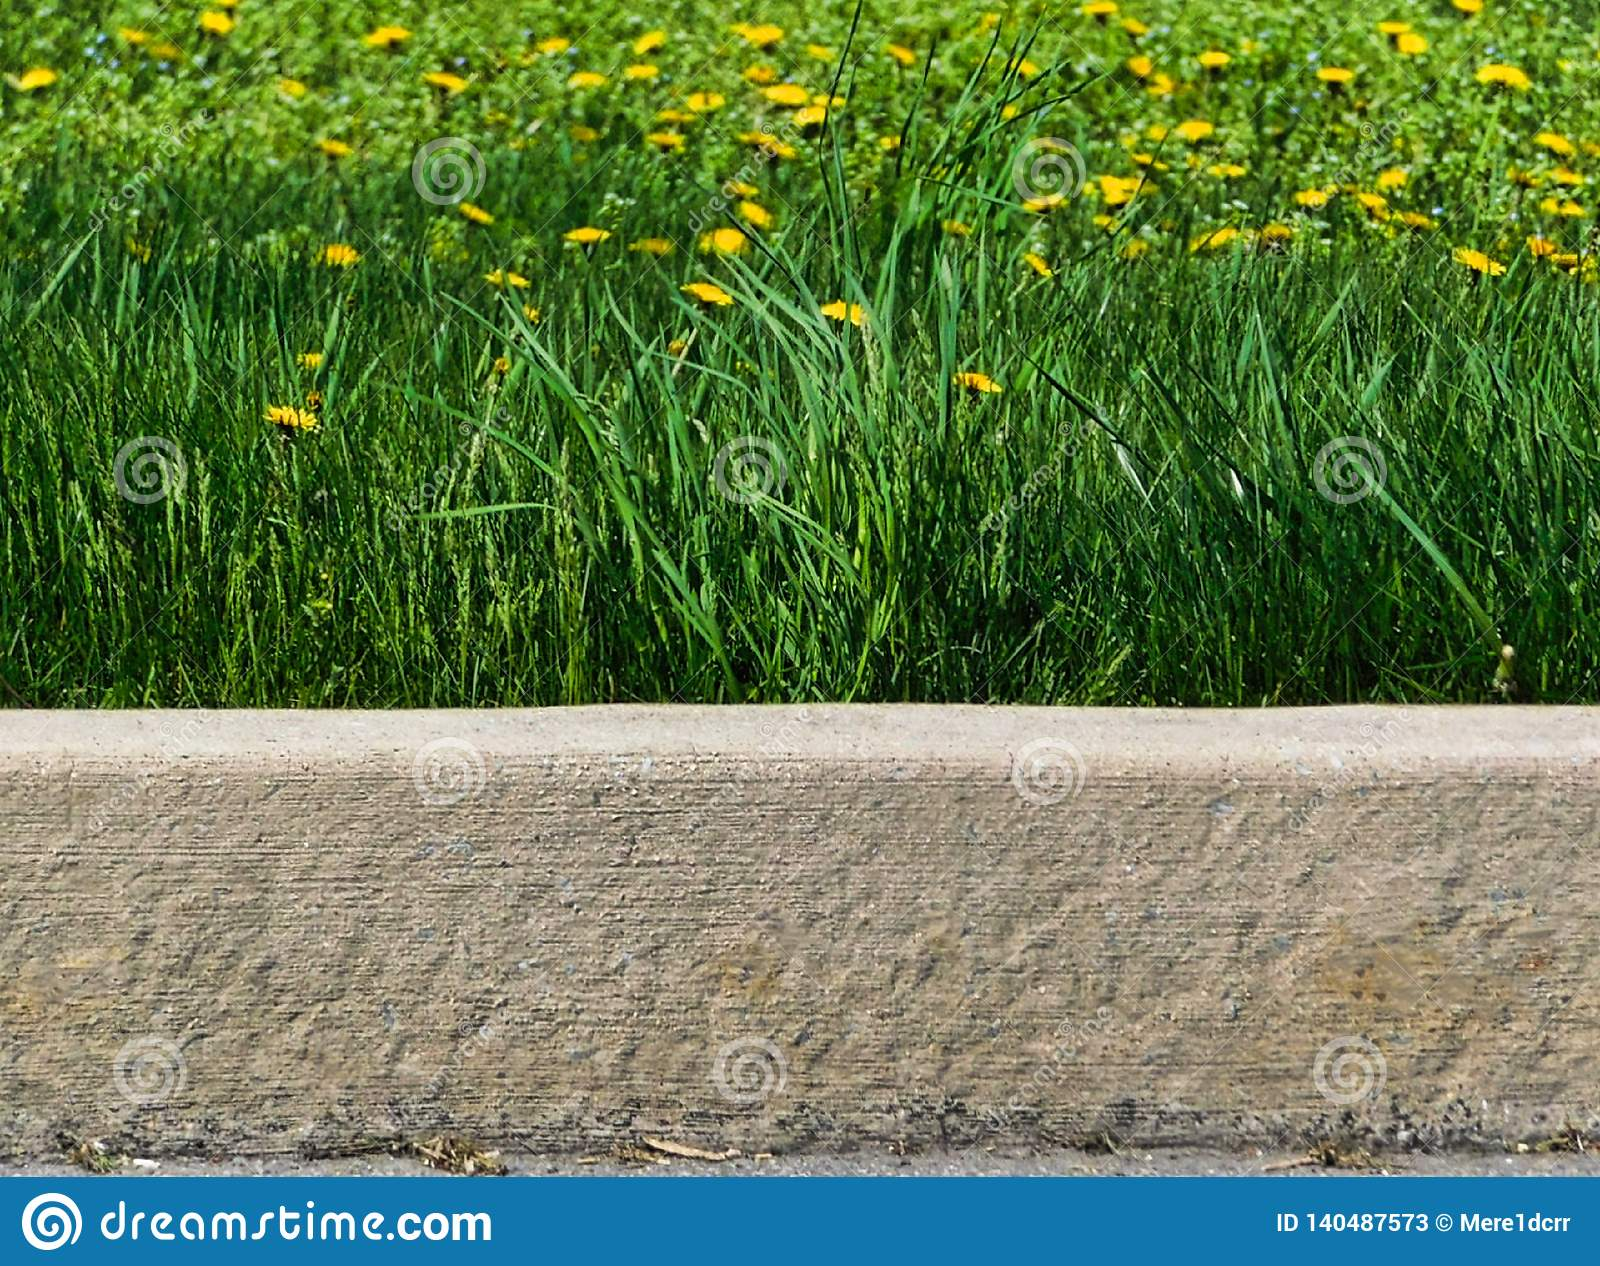 Tall grass and dandelions along the curb